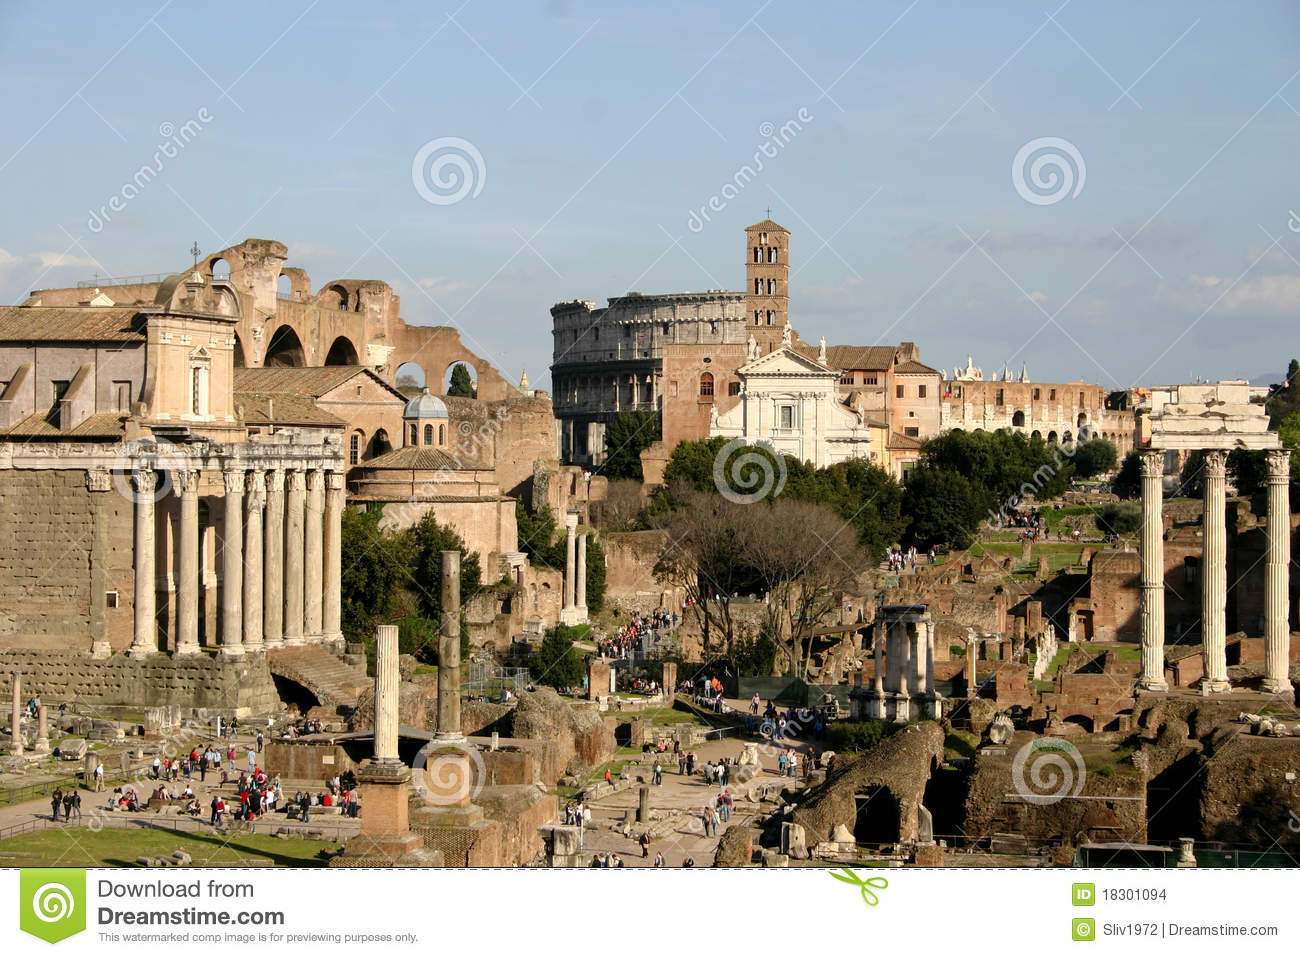 Imperial forums in Rome